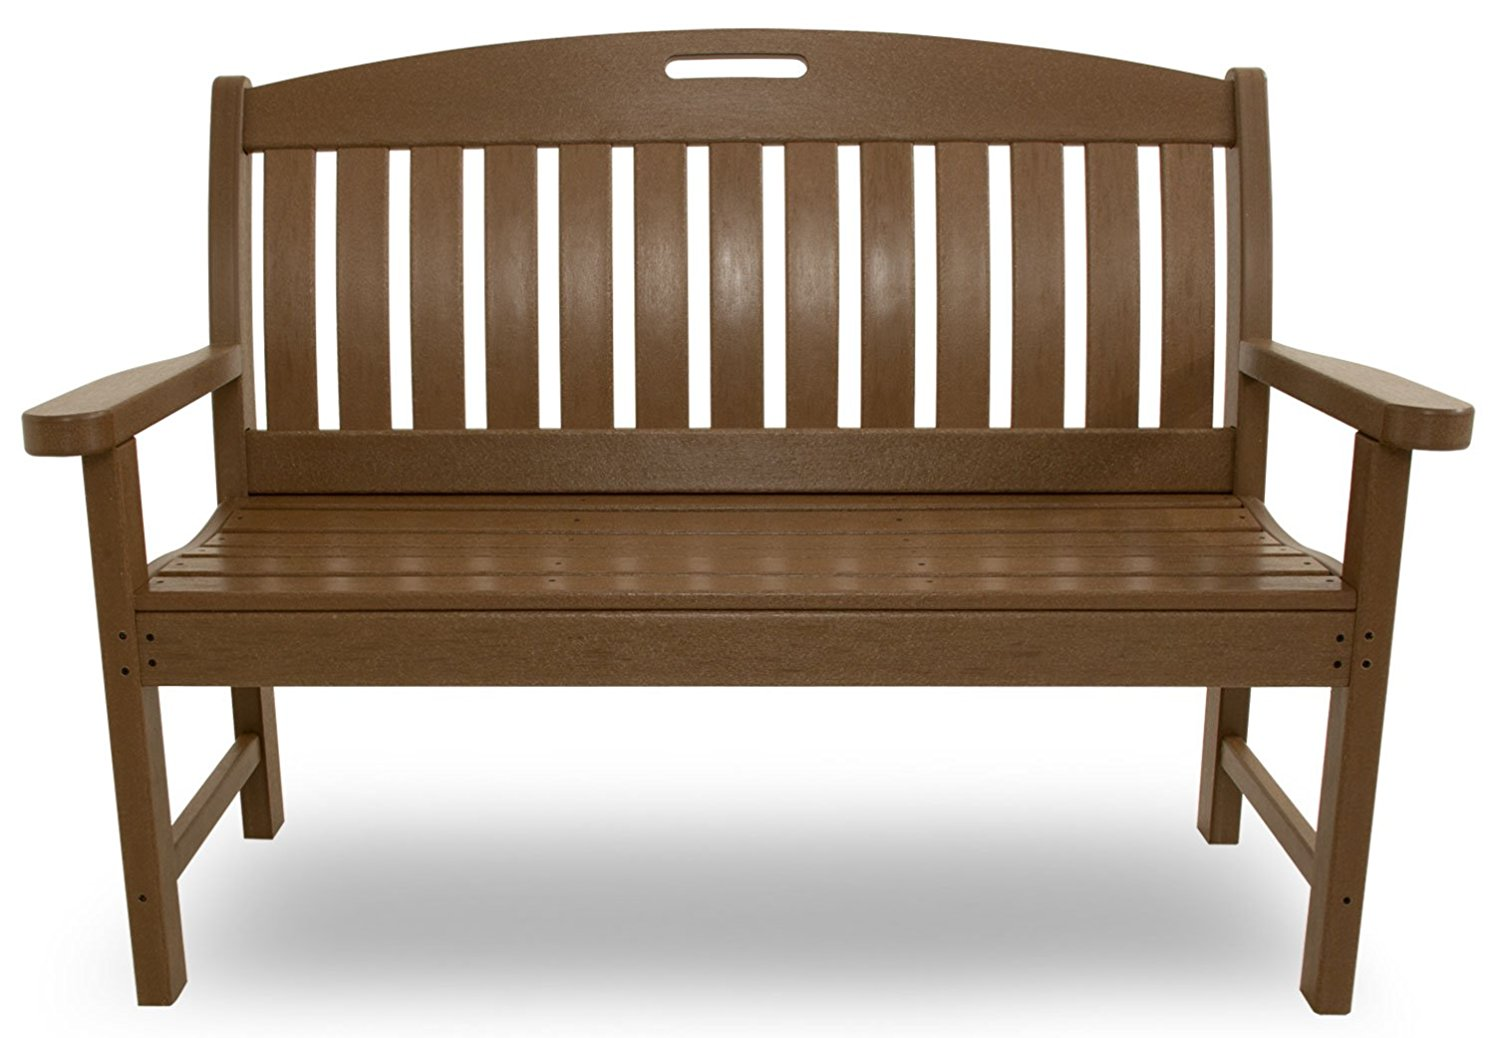 Bench clipart garden bench. Porch cliparts free download